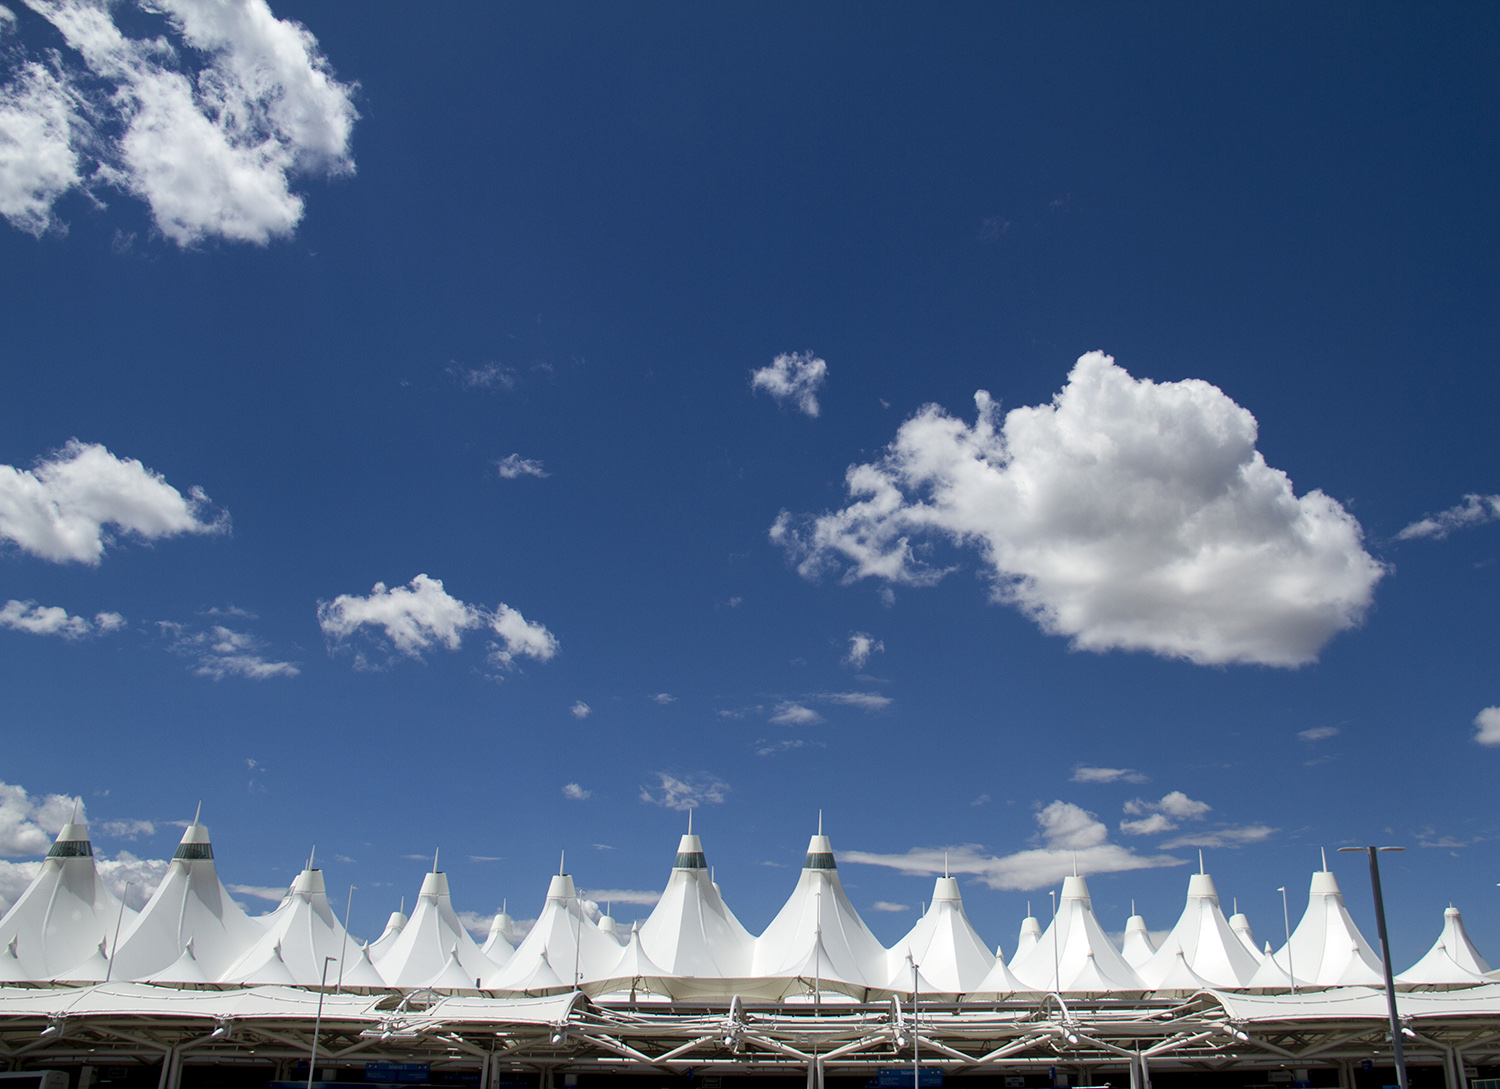 Denver International Airport's iconic pitched roof.